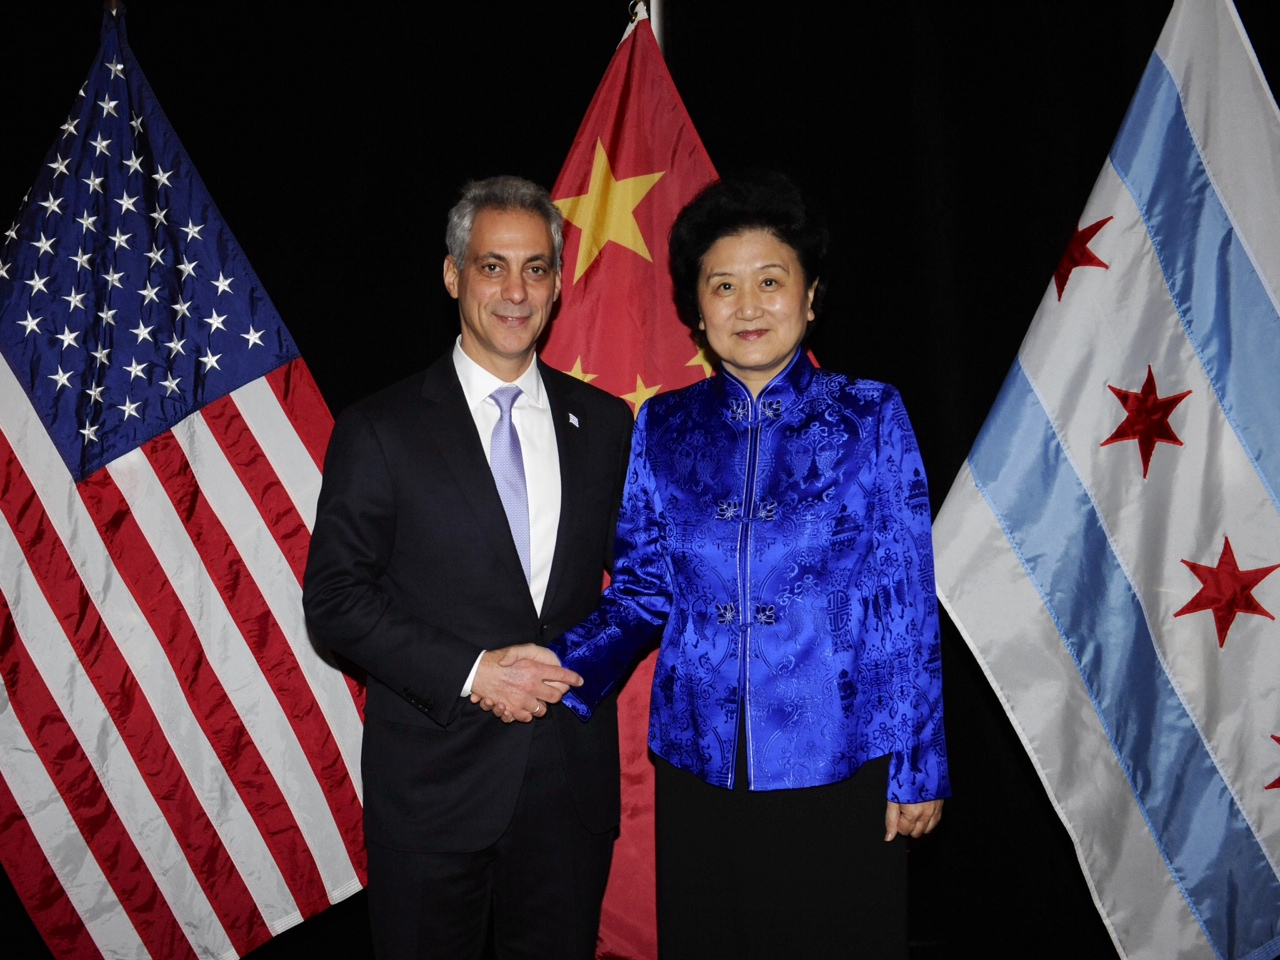 Mayor Rahm Emanuel welcomes Her Excellency Liu Yandong, the Vice Premier of the State Council of the People's Republic of China to Chicago.